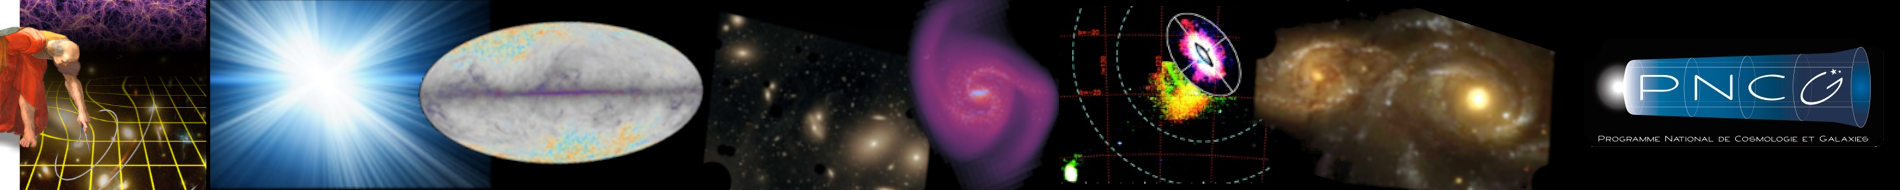 Programme National de Cosmologie et Galaxies